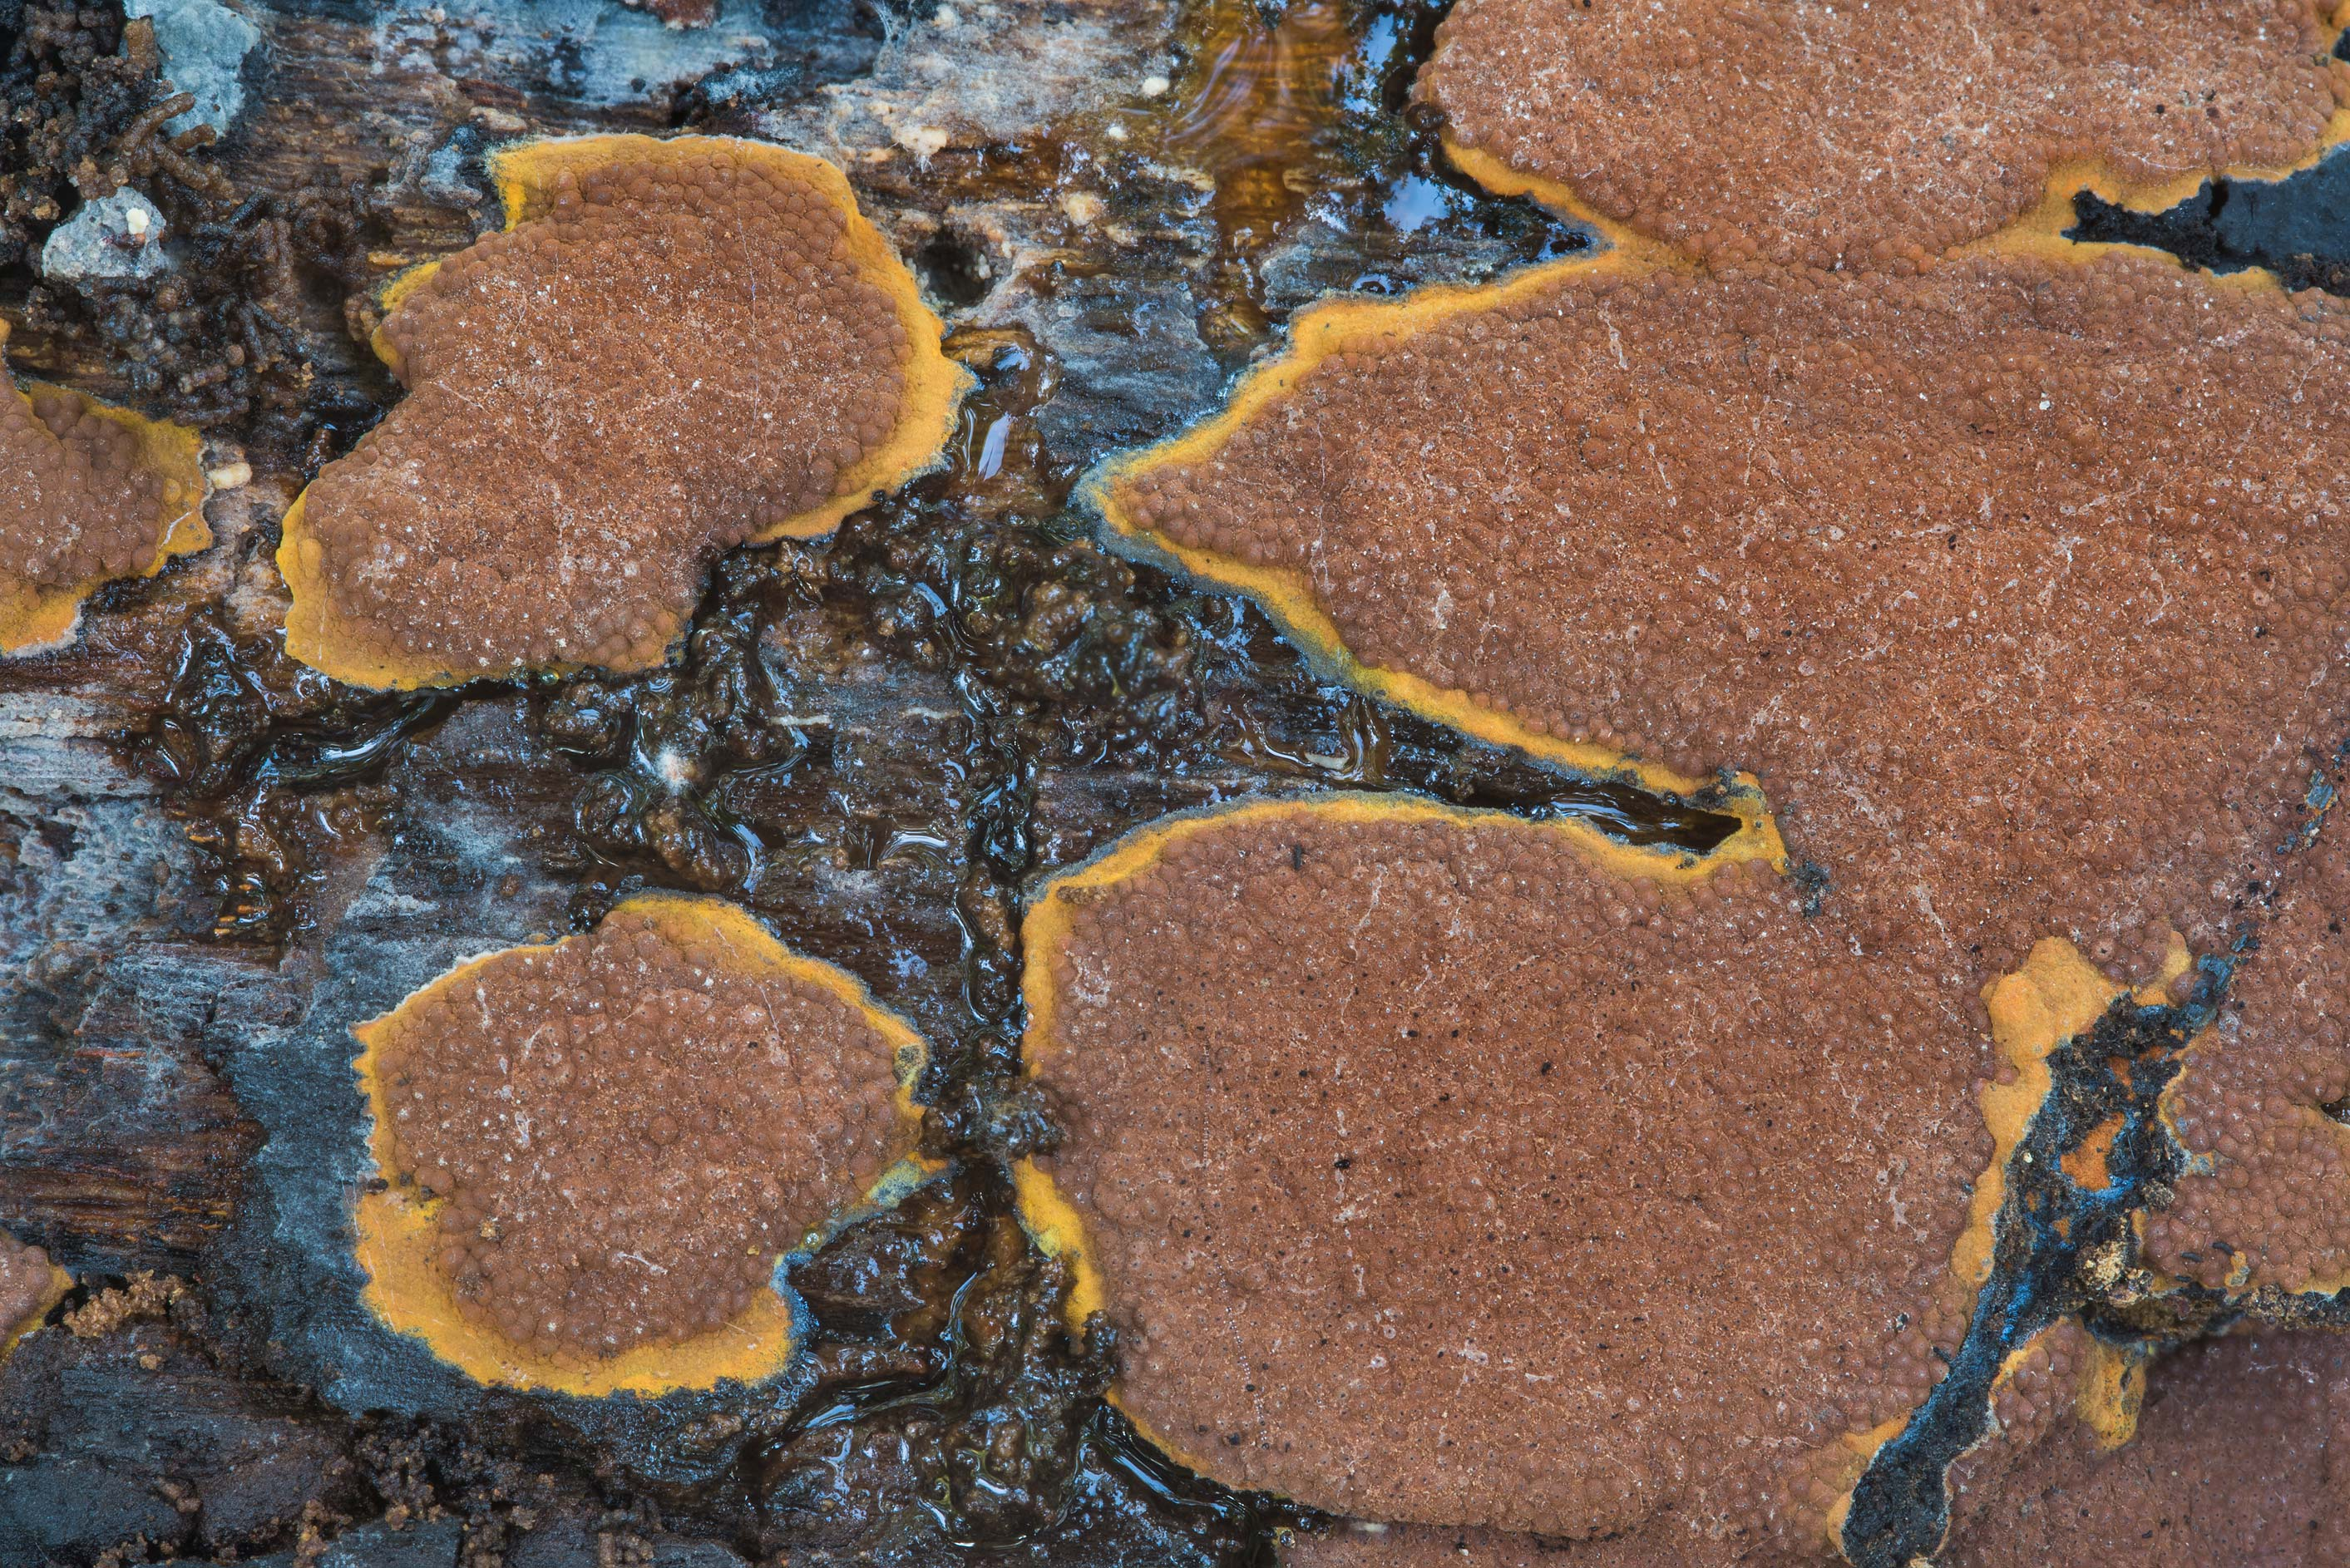 Close up of Hypoxylaceae crust fungus on a...National Forest. Richards, Texas